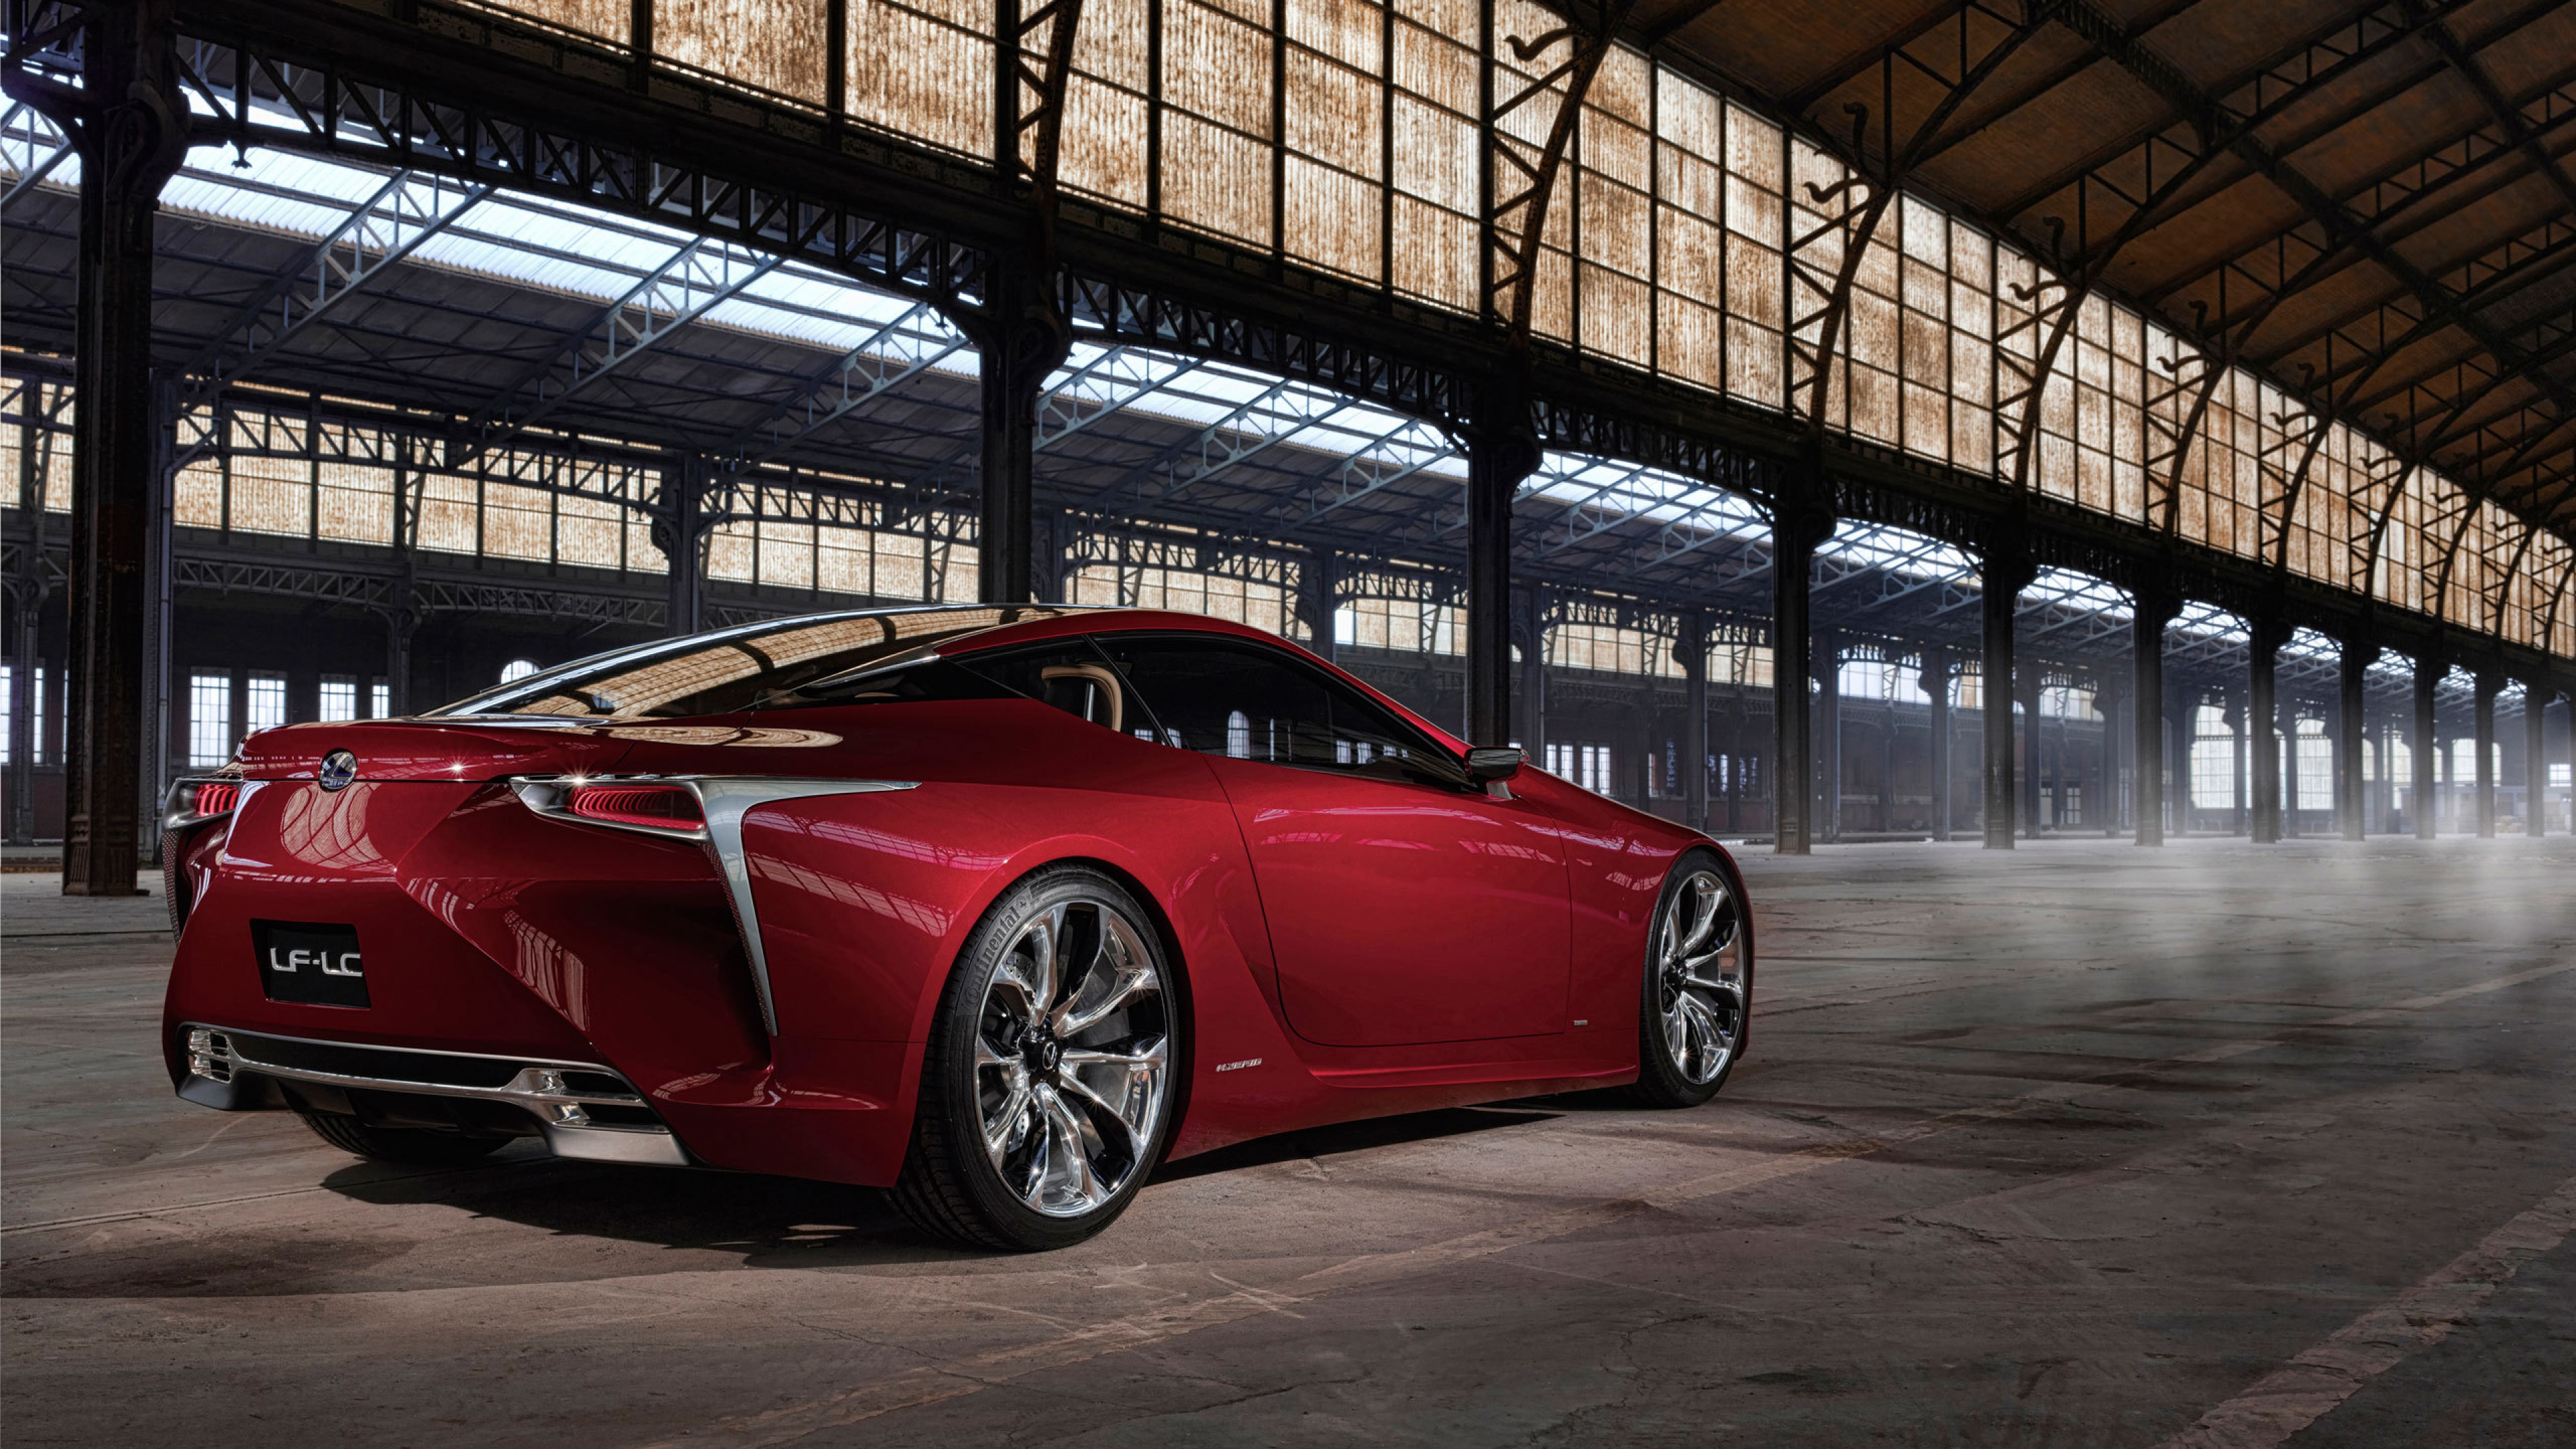 Lexus LF LC Concept Car, HD Cars, 4k Wallpapers, Images ...